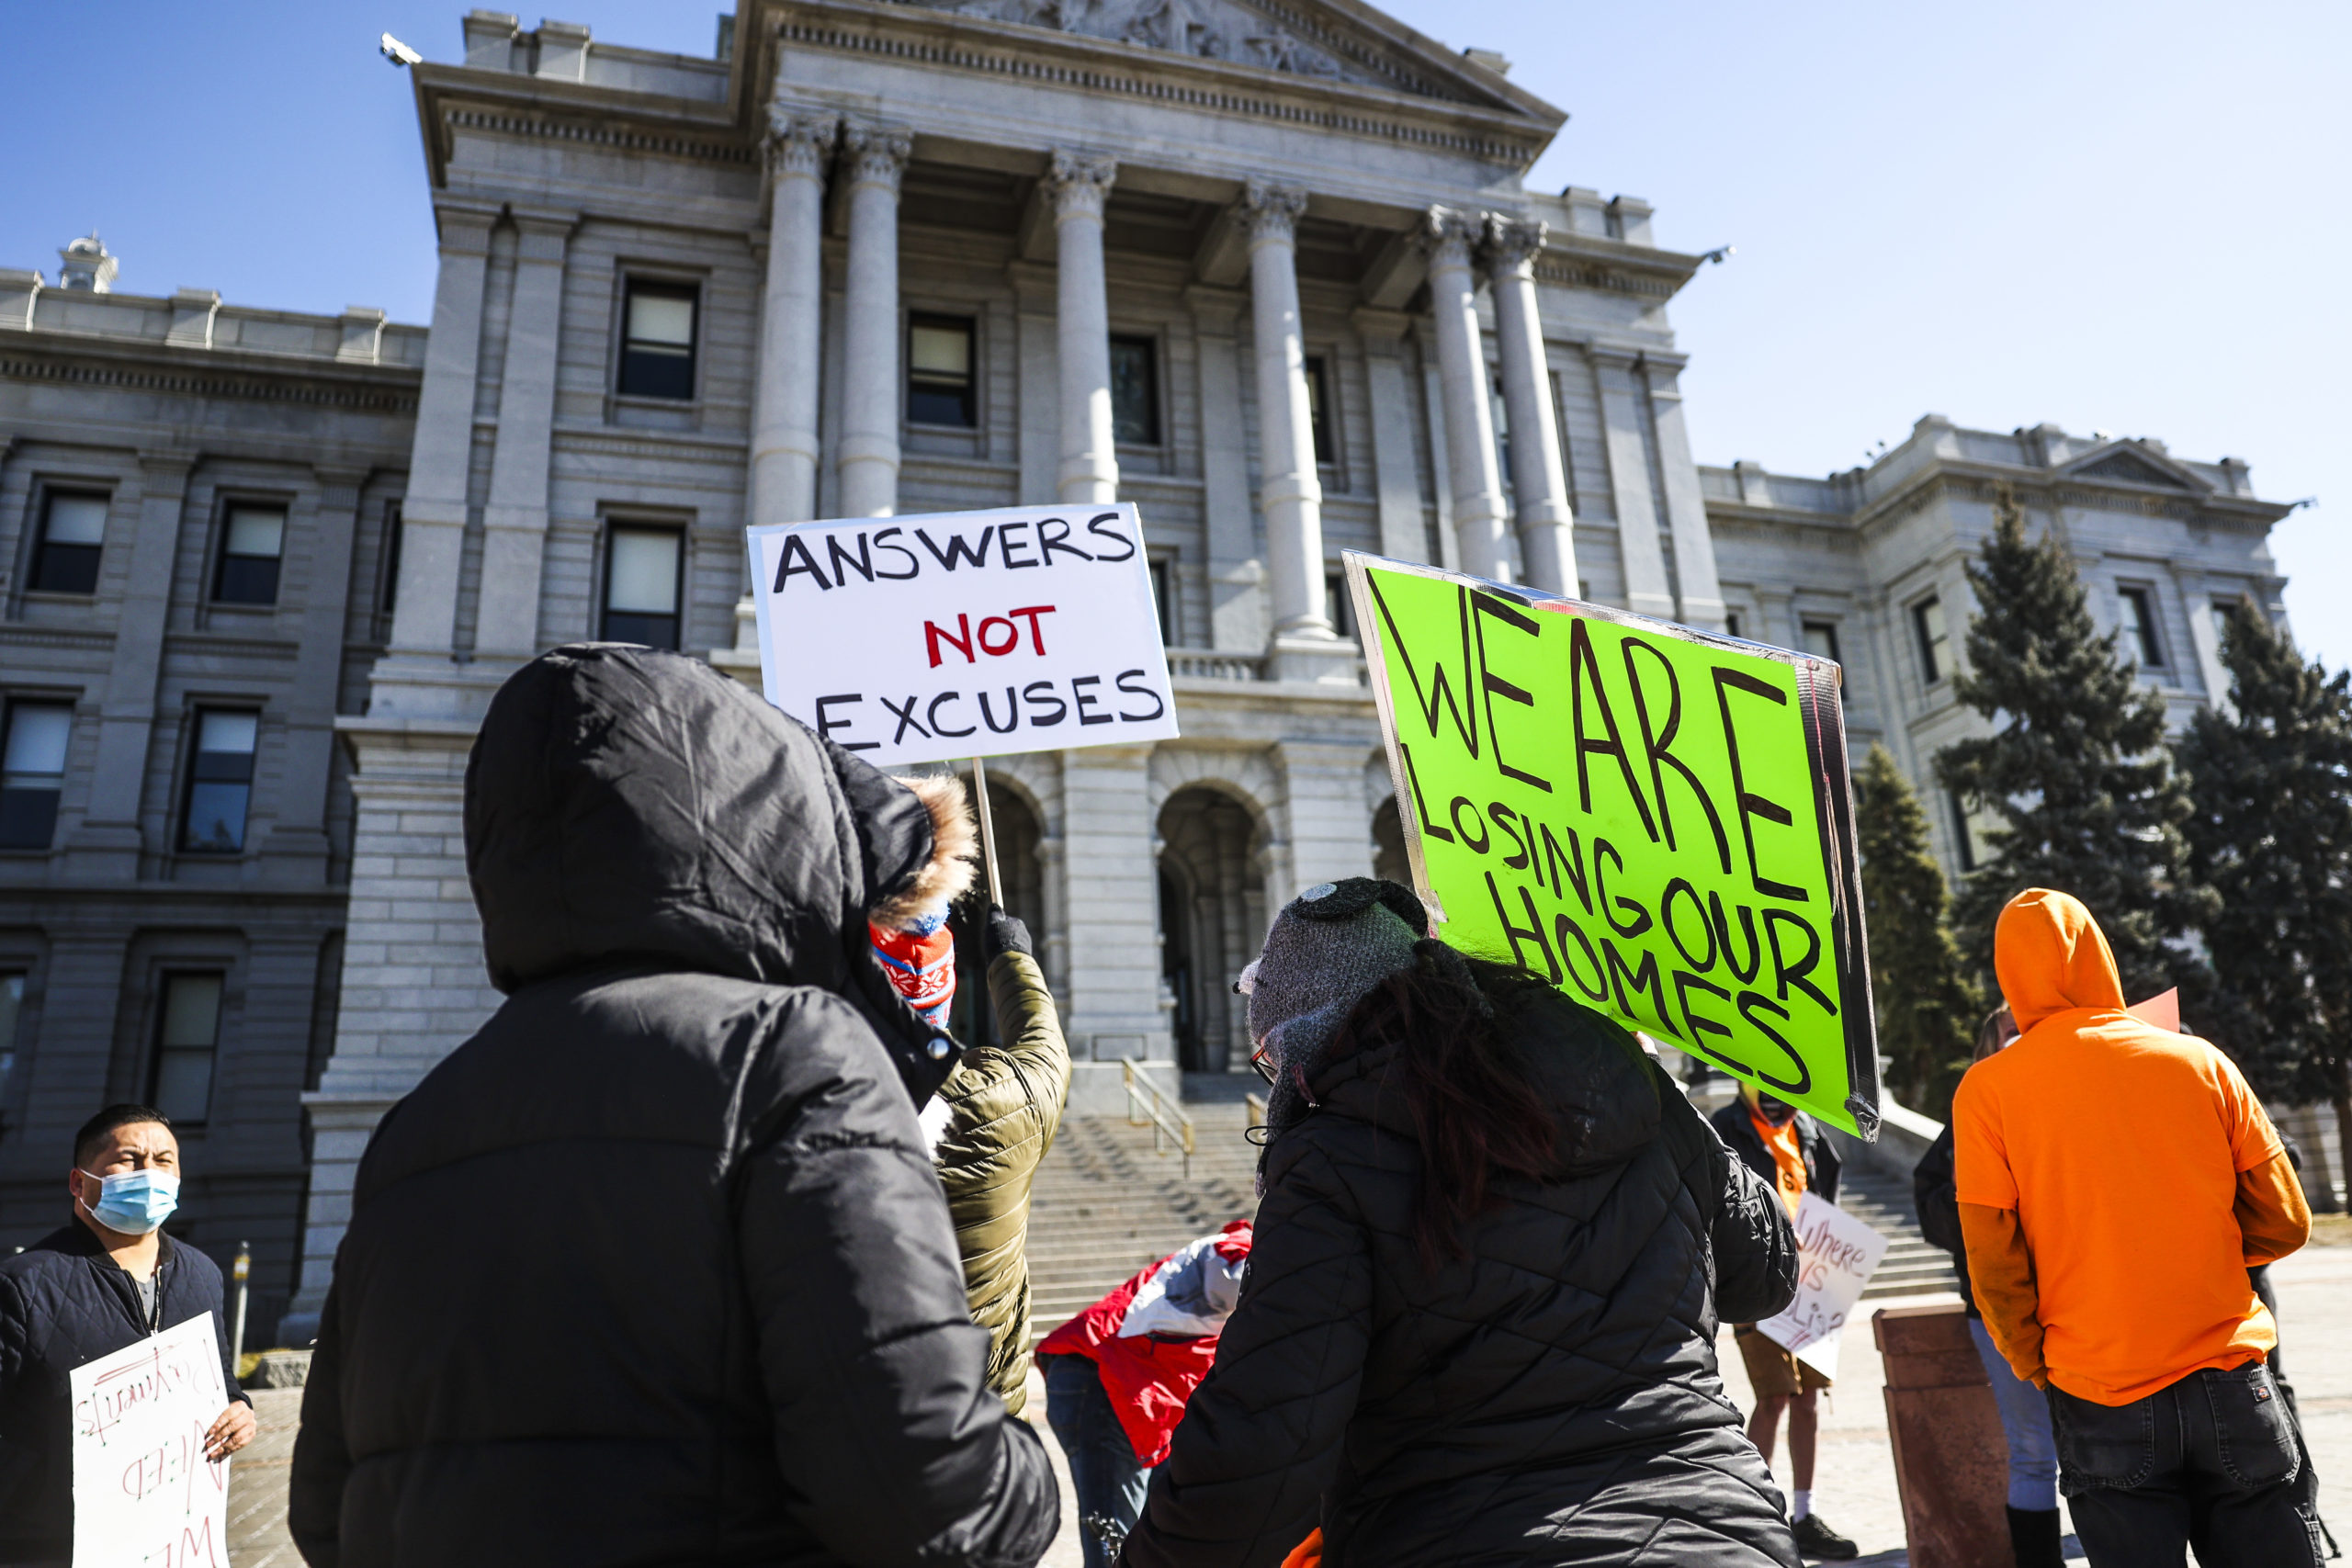 People demonstrate outside the Colorado State Capitol demanding answers about a lack of financial relief from the state on Feb. 8 in Denver, Colorado. (Michael Ciaglo/Getty Images)